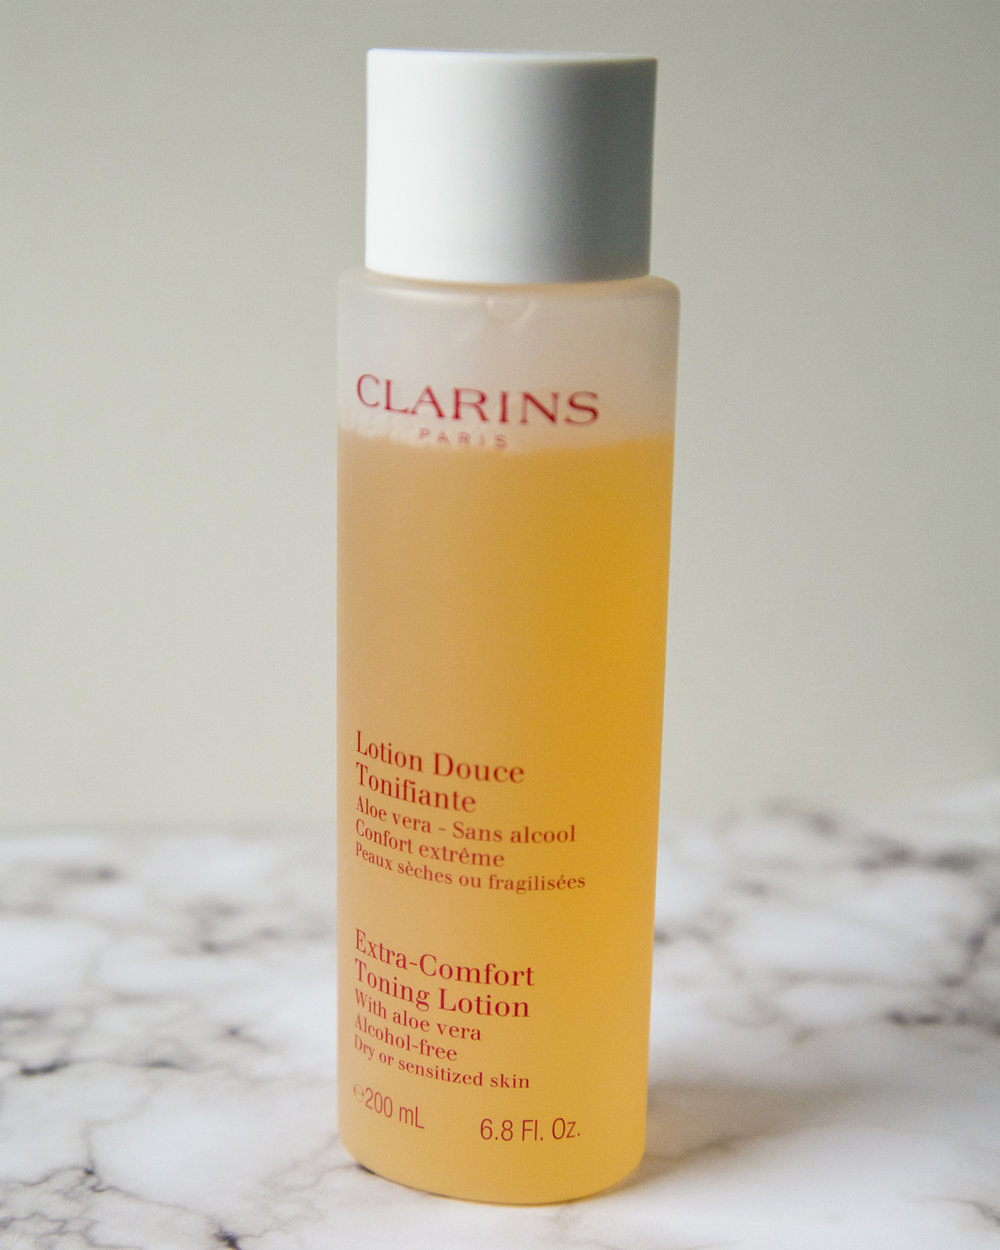 Clarins Extra Comfort Toning Lotion